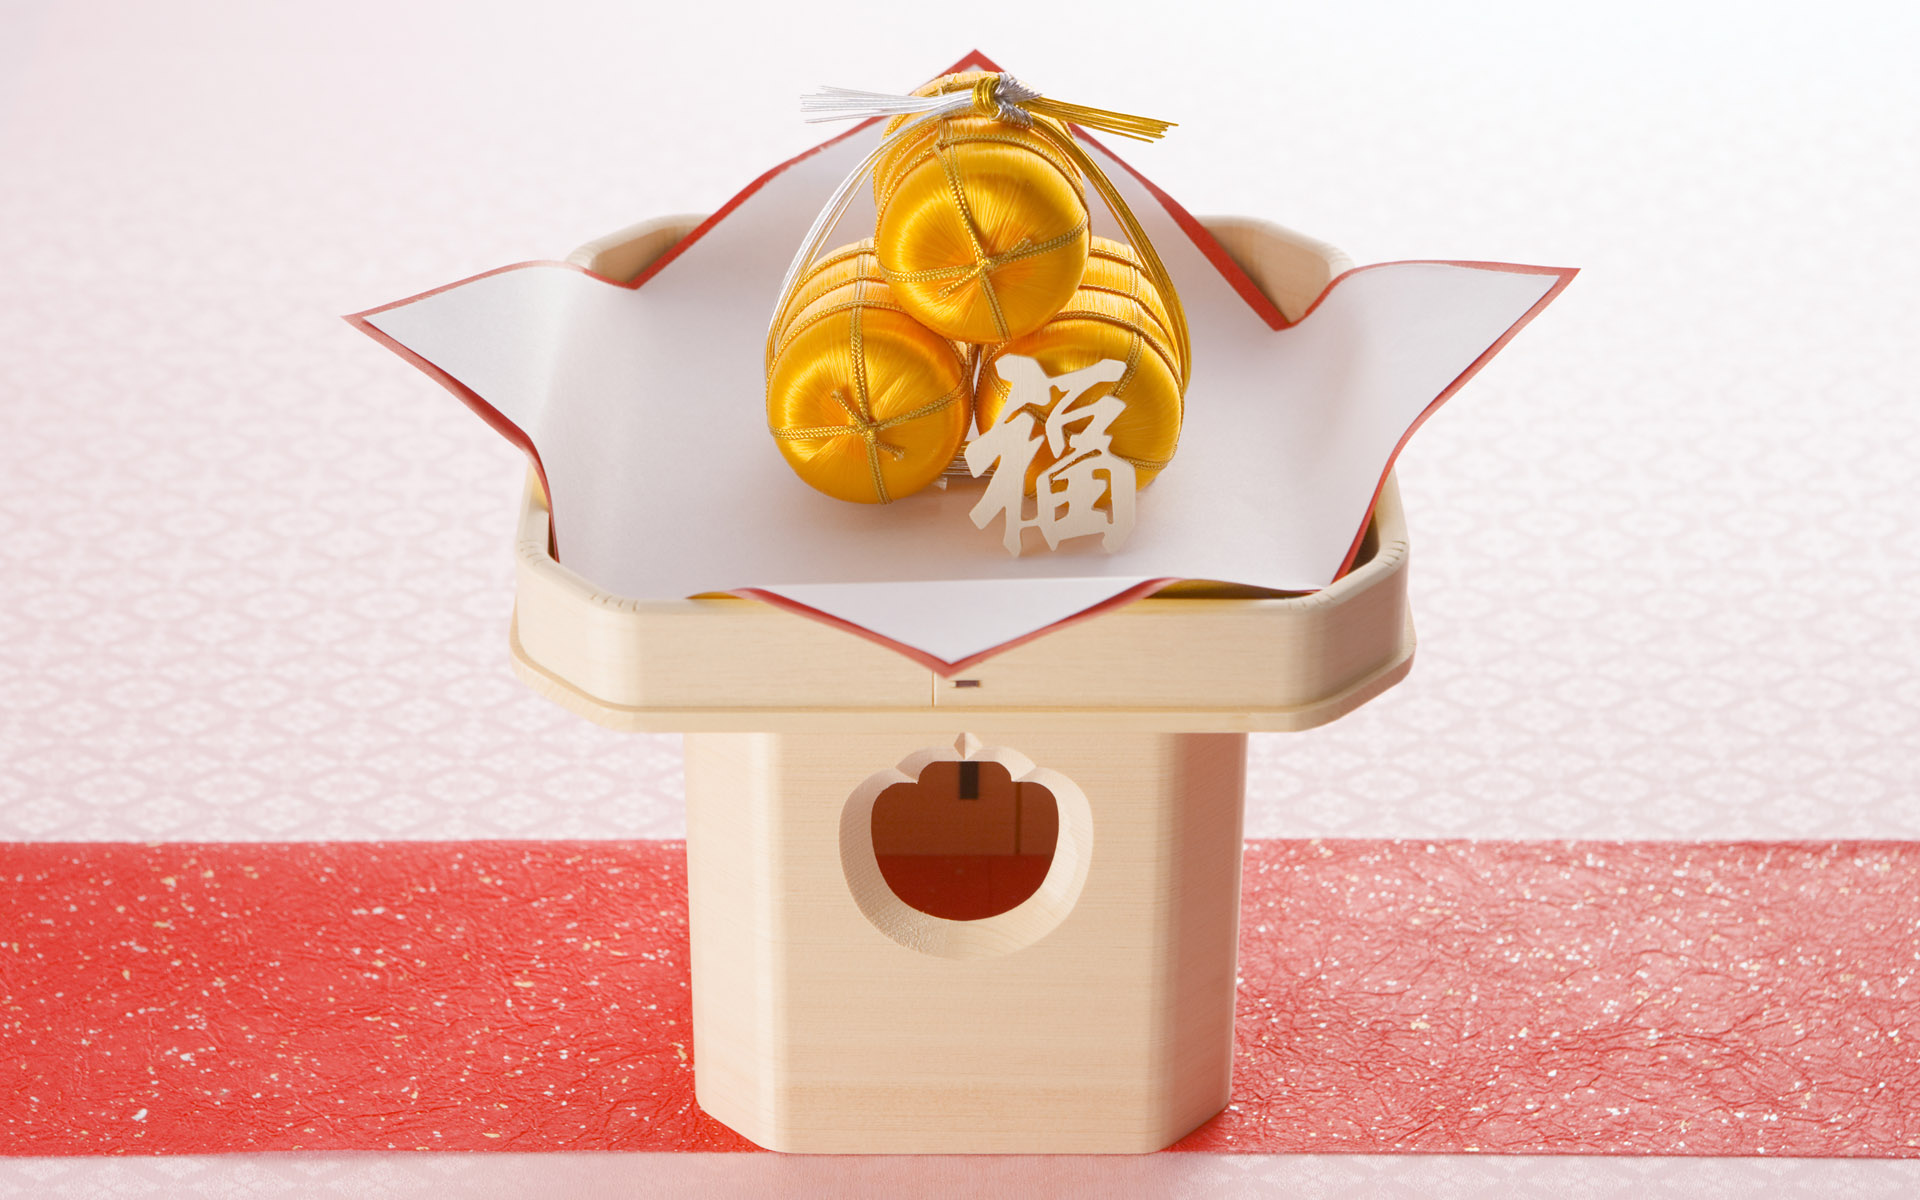 Japanese New Year and cultural material 7671